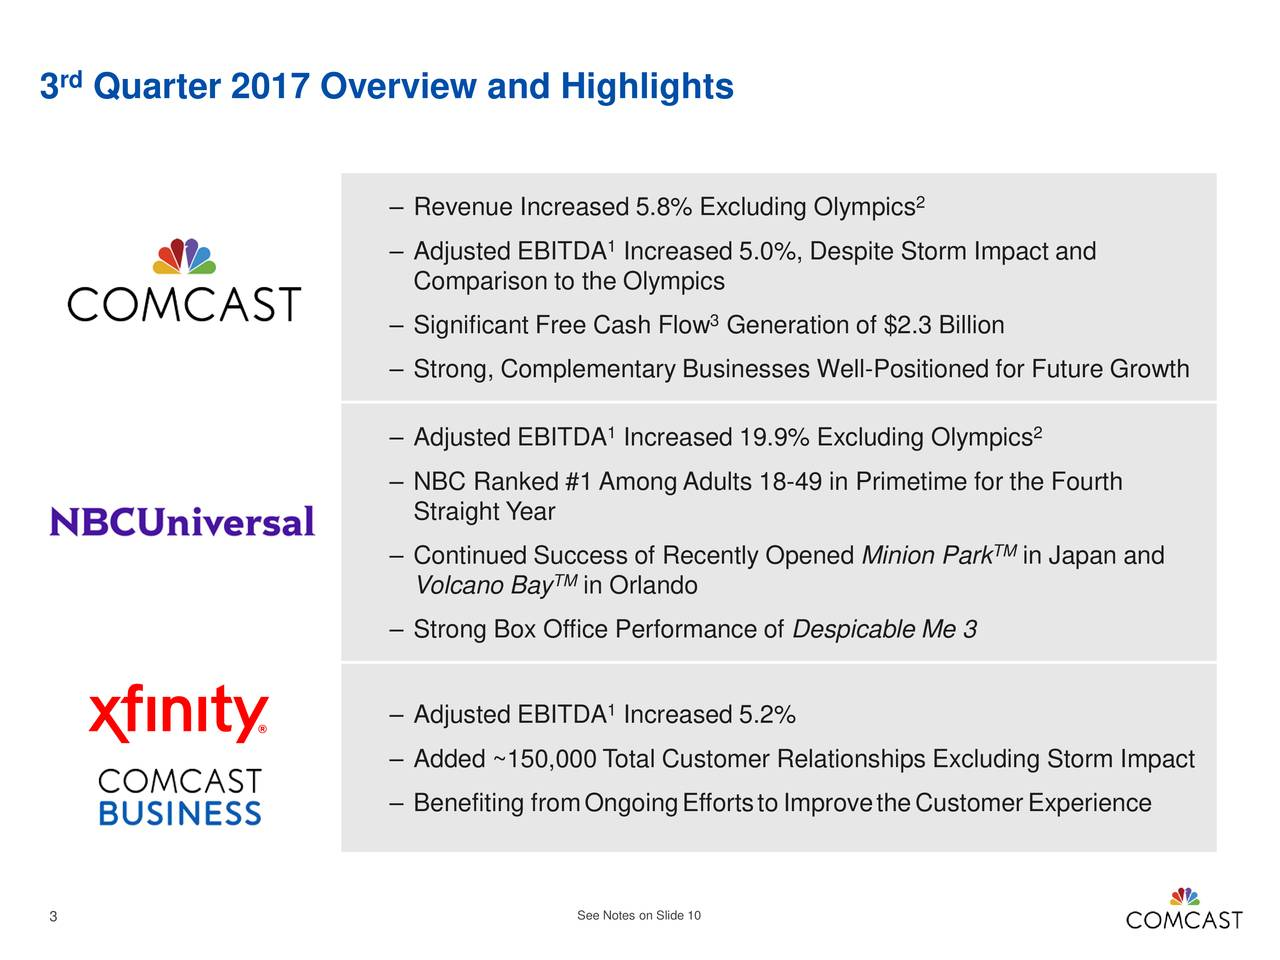 Comcast Quote Comcast Corporation 2017 Q3  Results  Earnings Call Slides